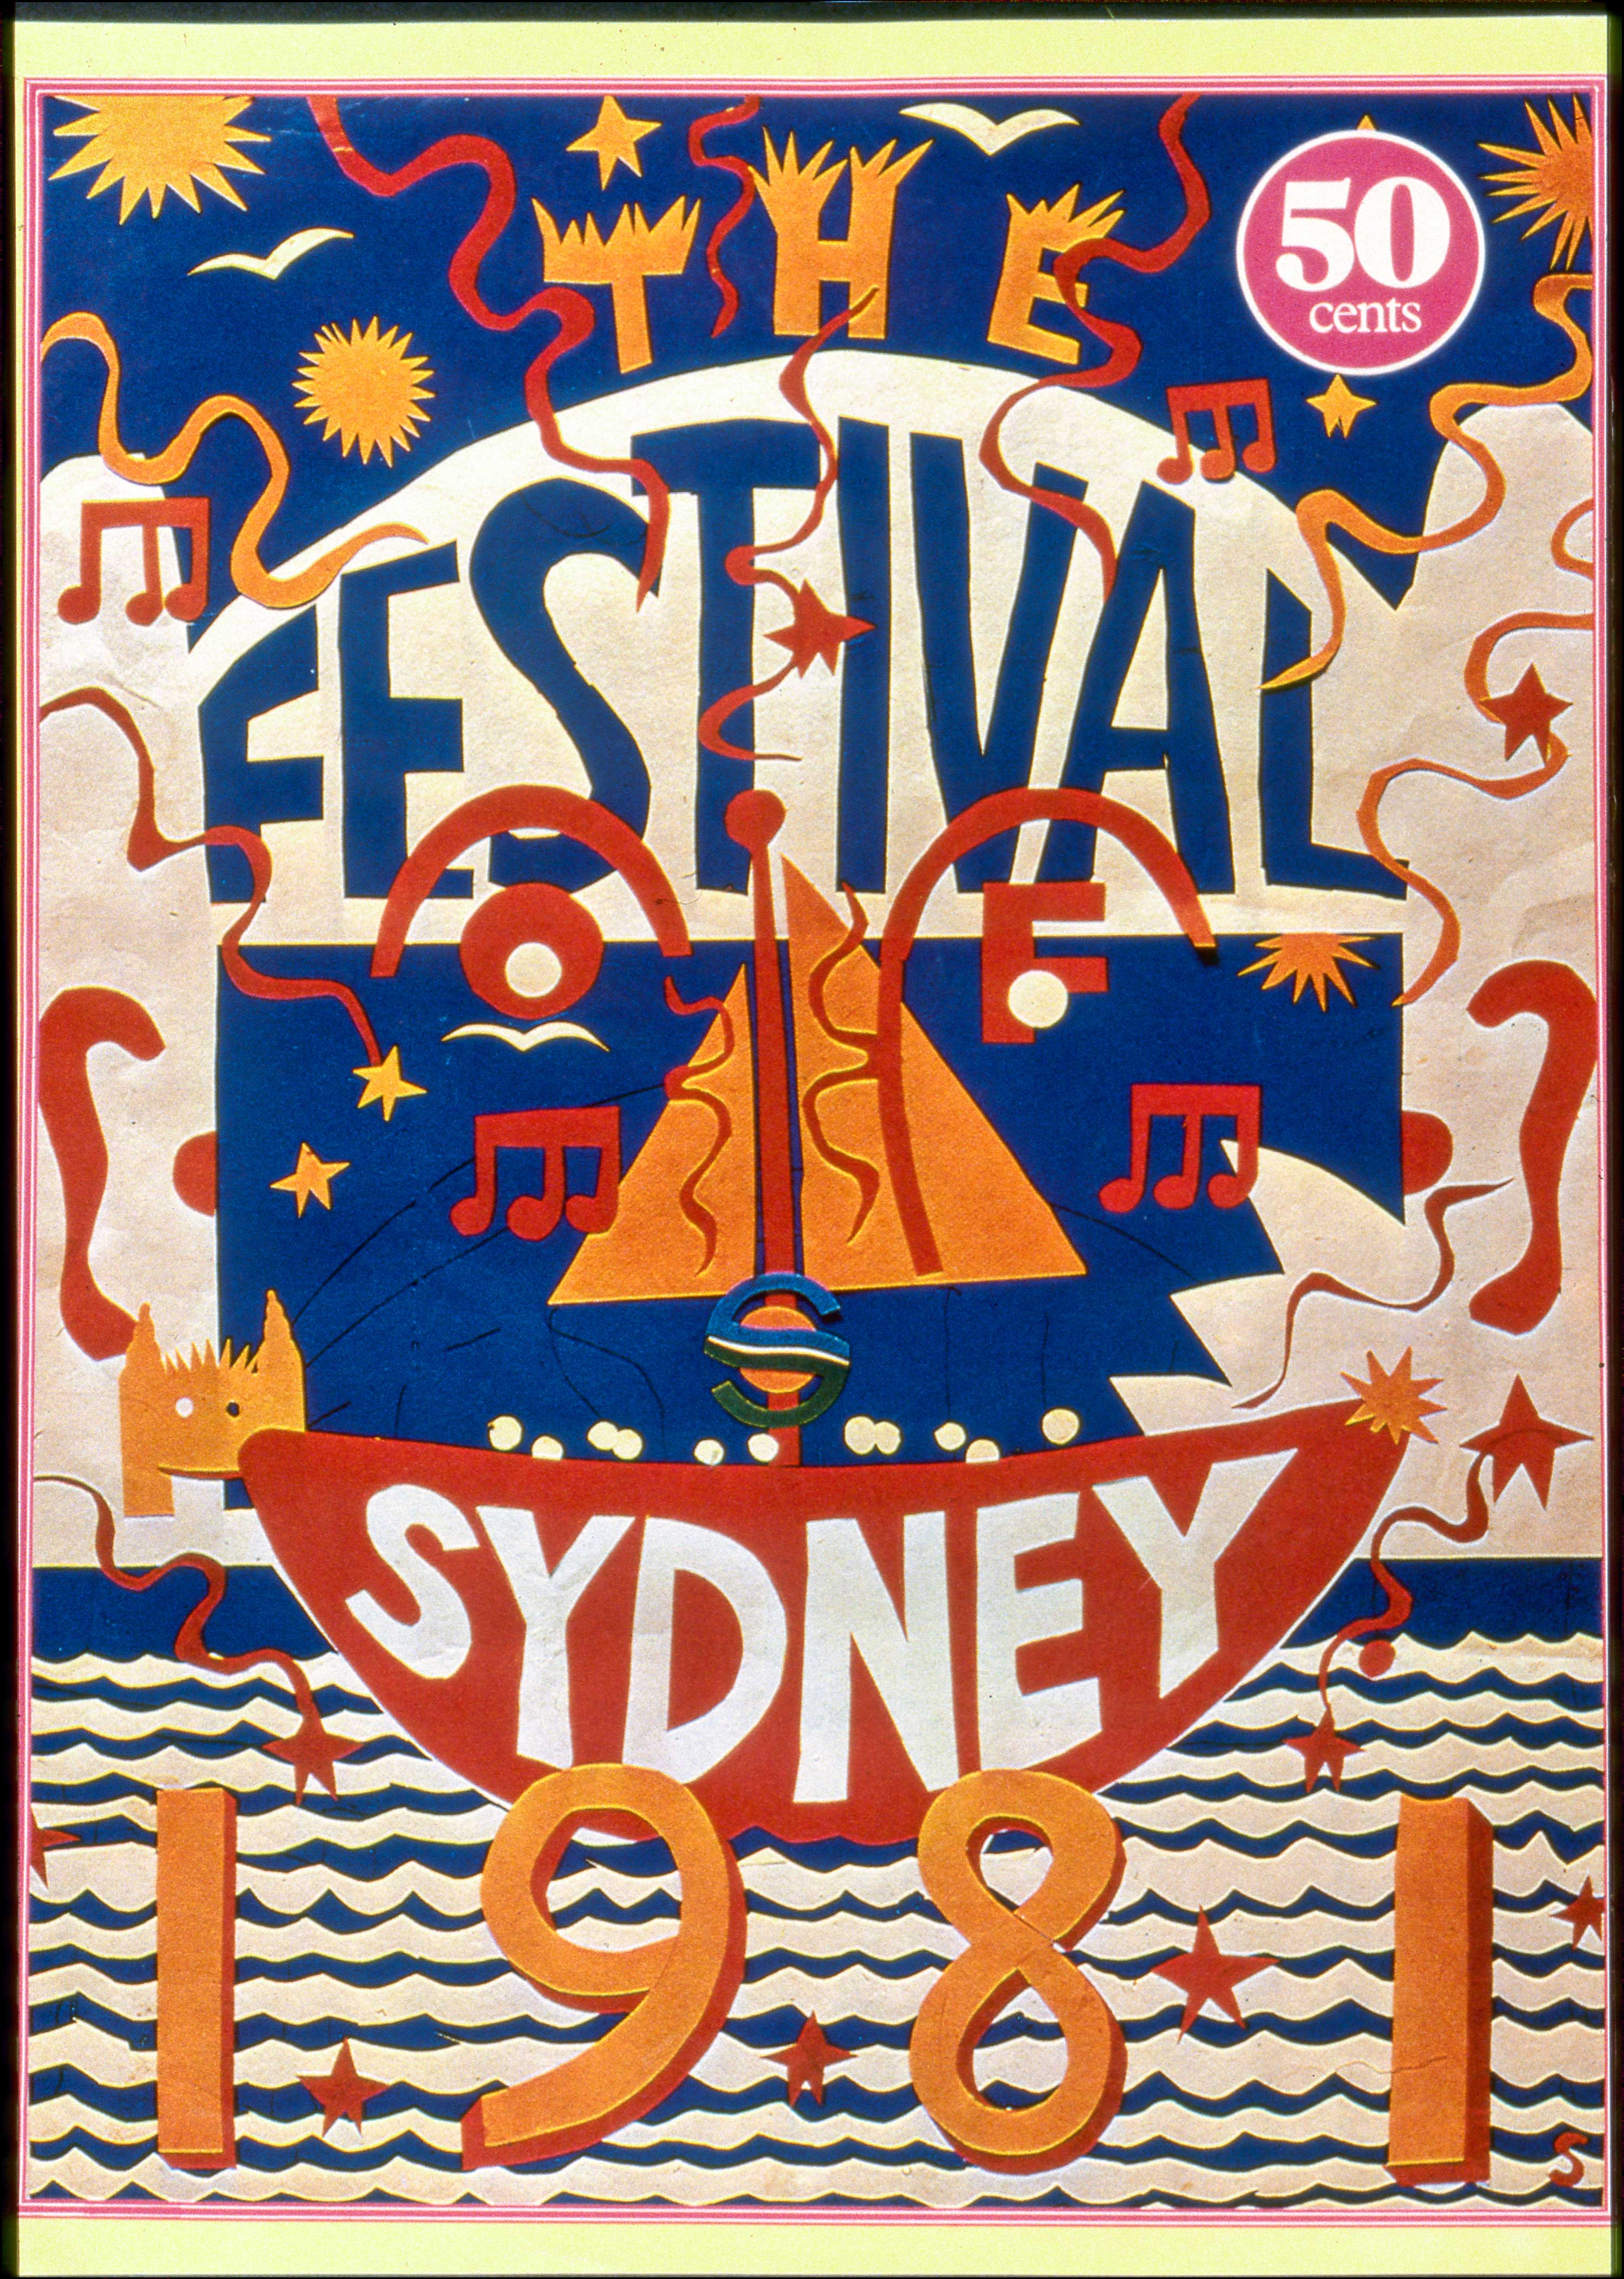 Sydney Festival 1981. City of Sydney Archives.